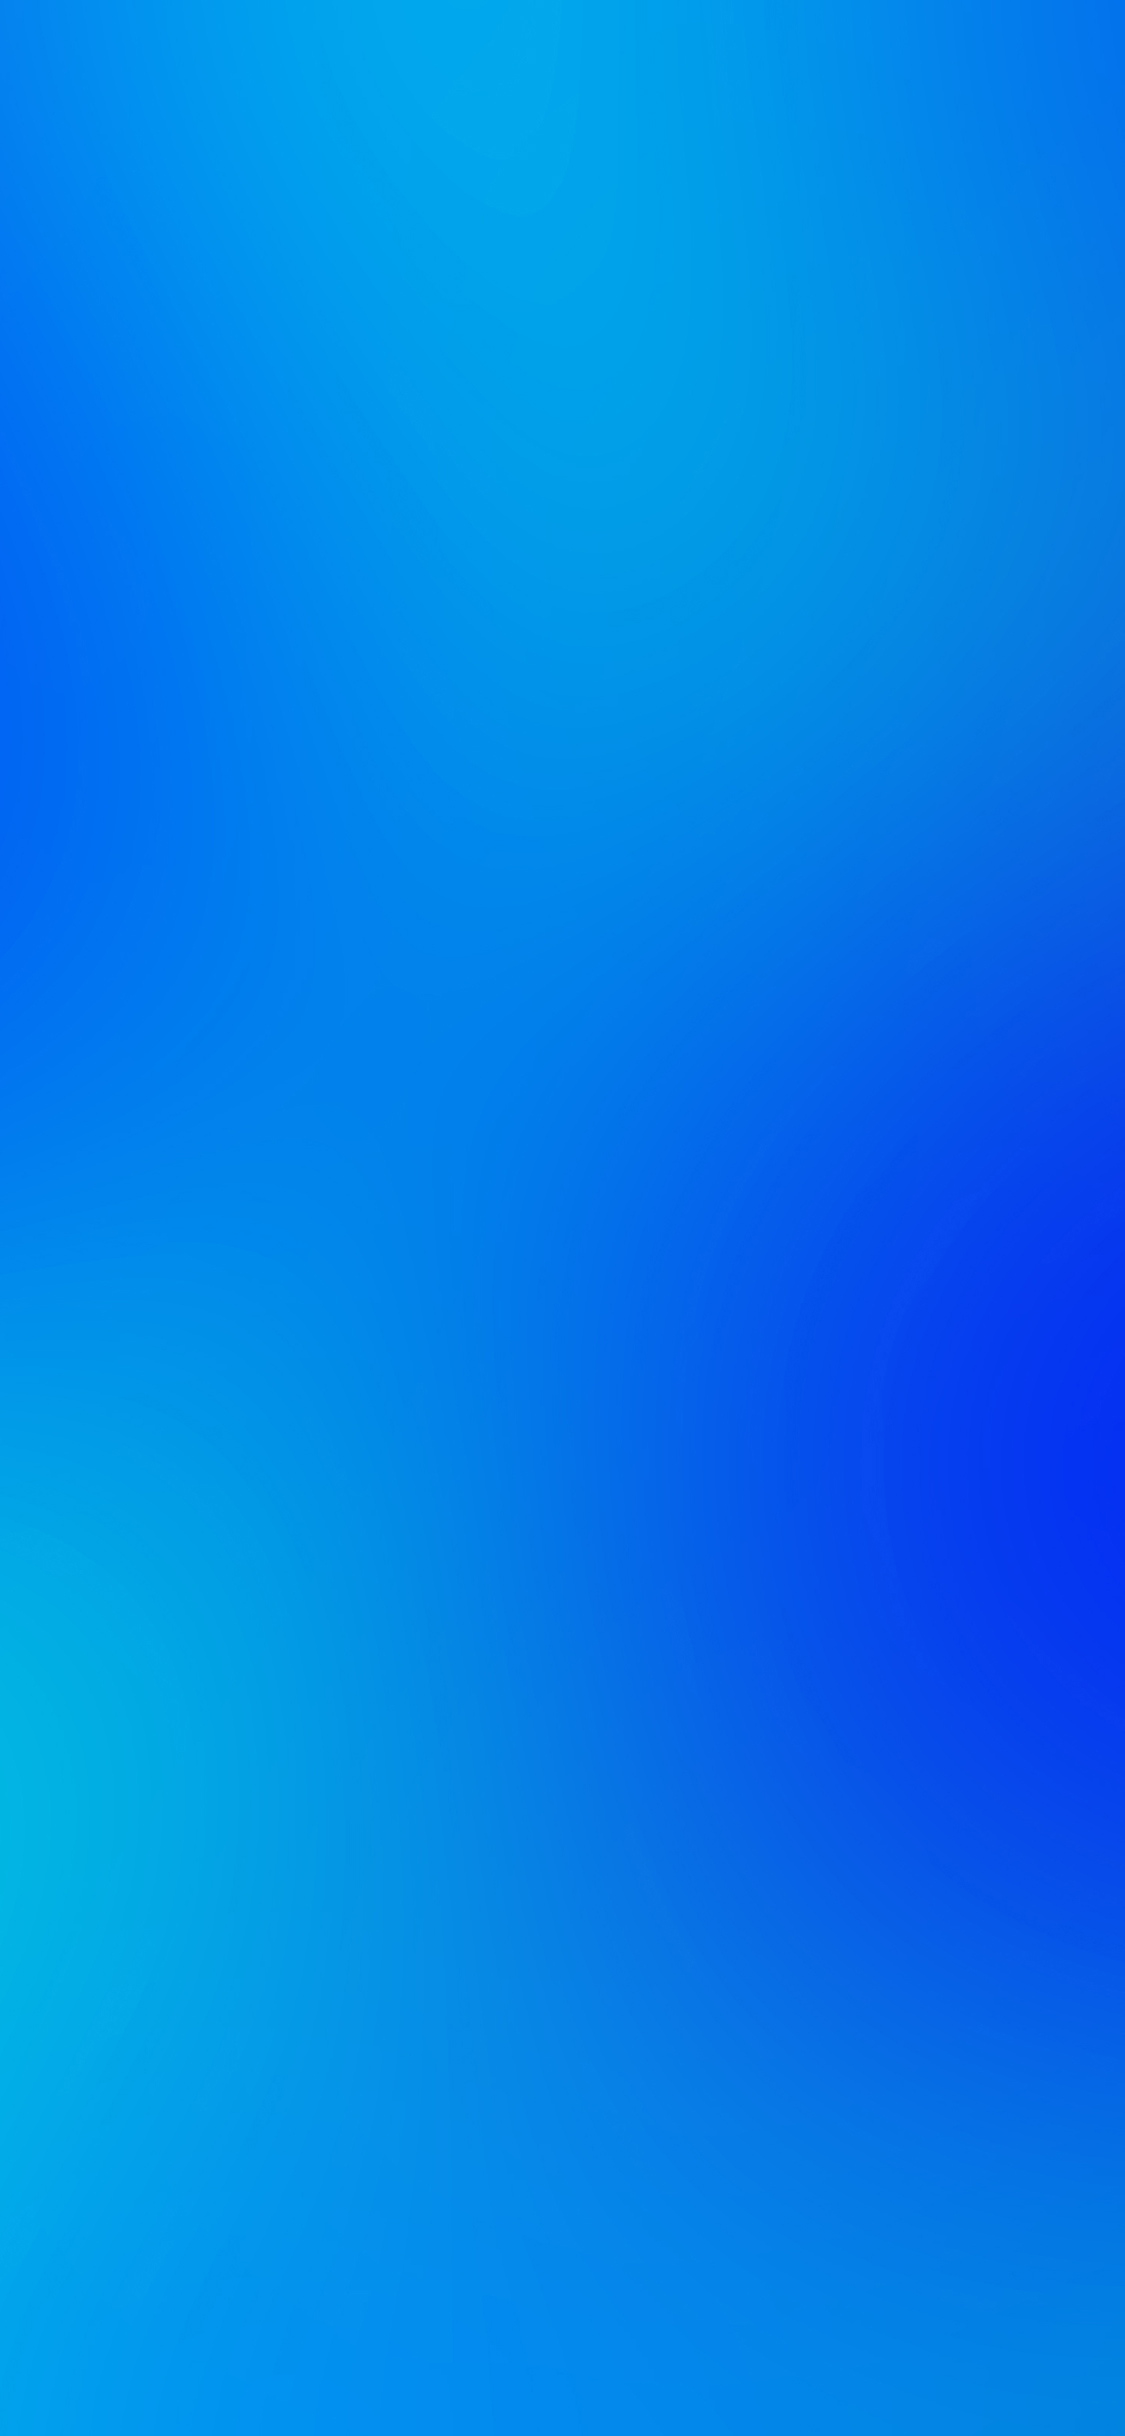 iPhoneXpapers.com-Apple-iPhone-wallpaper-sb11-wallpaper-blue-pimple-blur